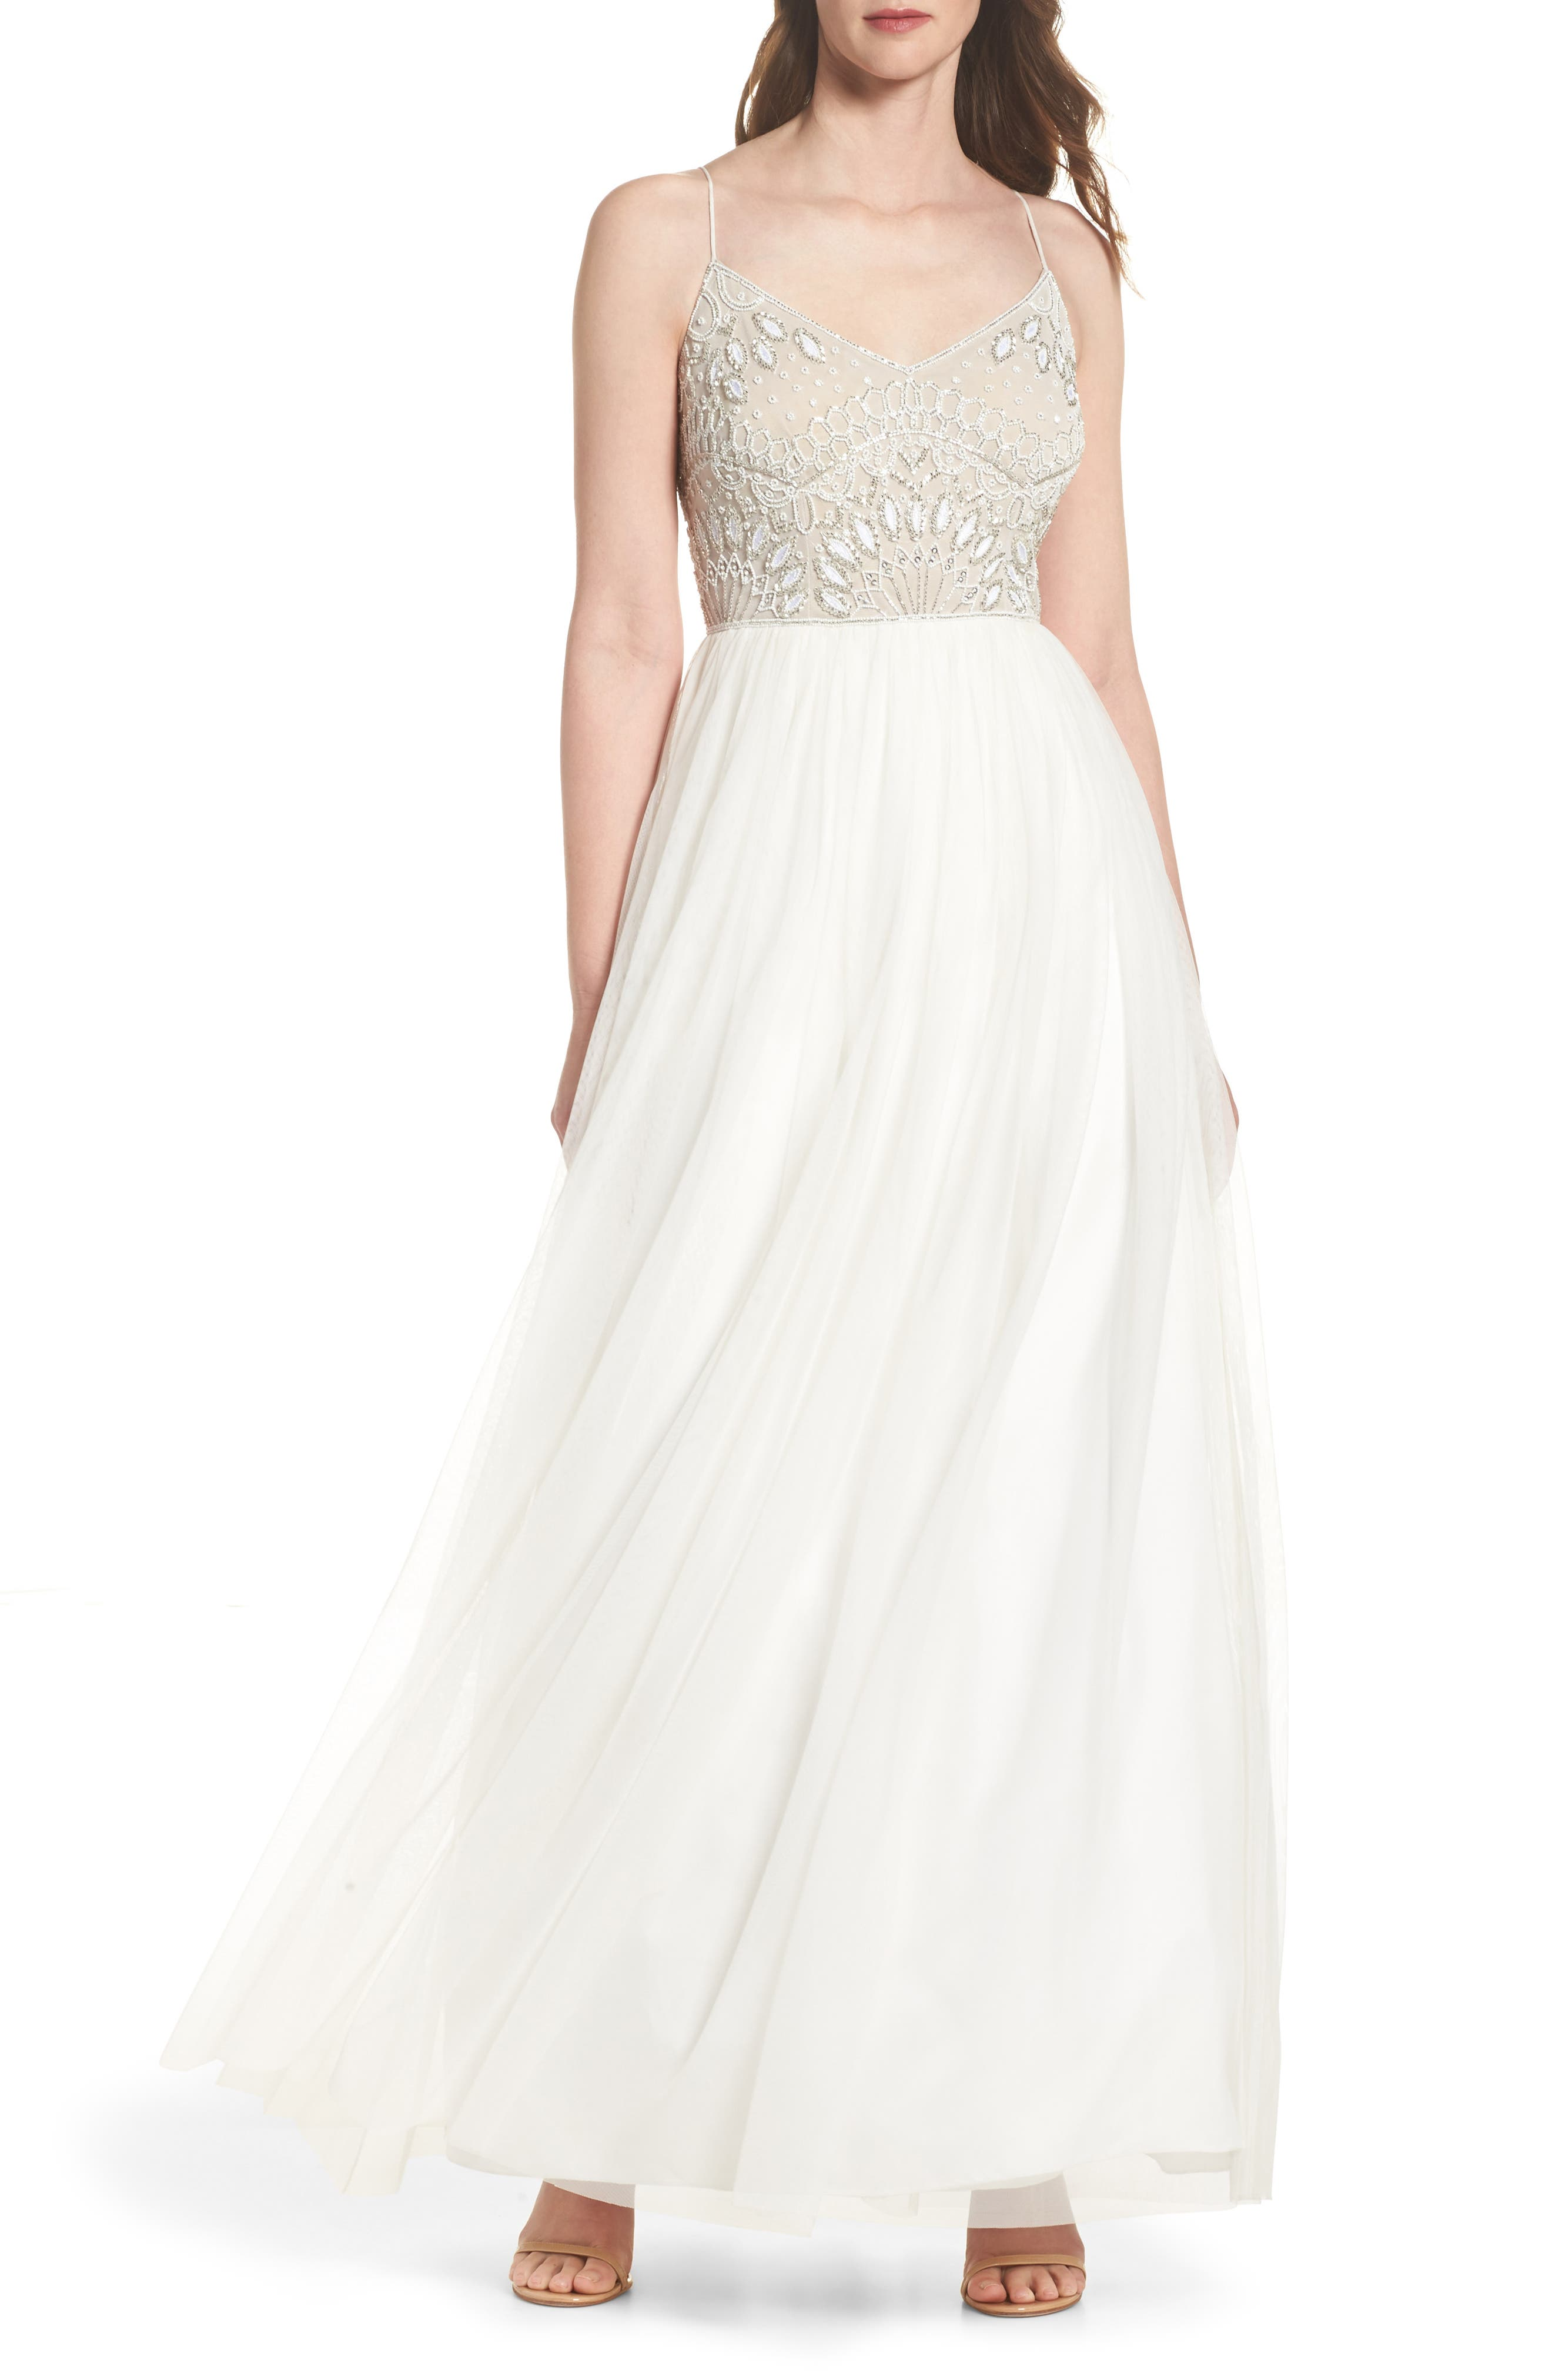 Main Image - Adrianna Papell Beaded Bodice Mesh Fit & Flare Gown